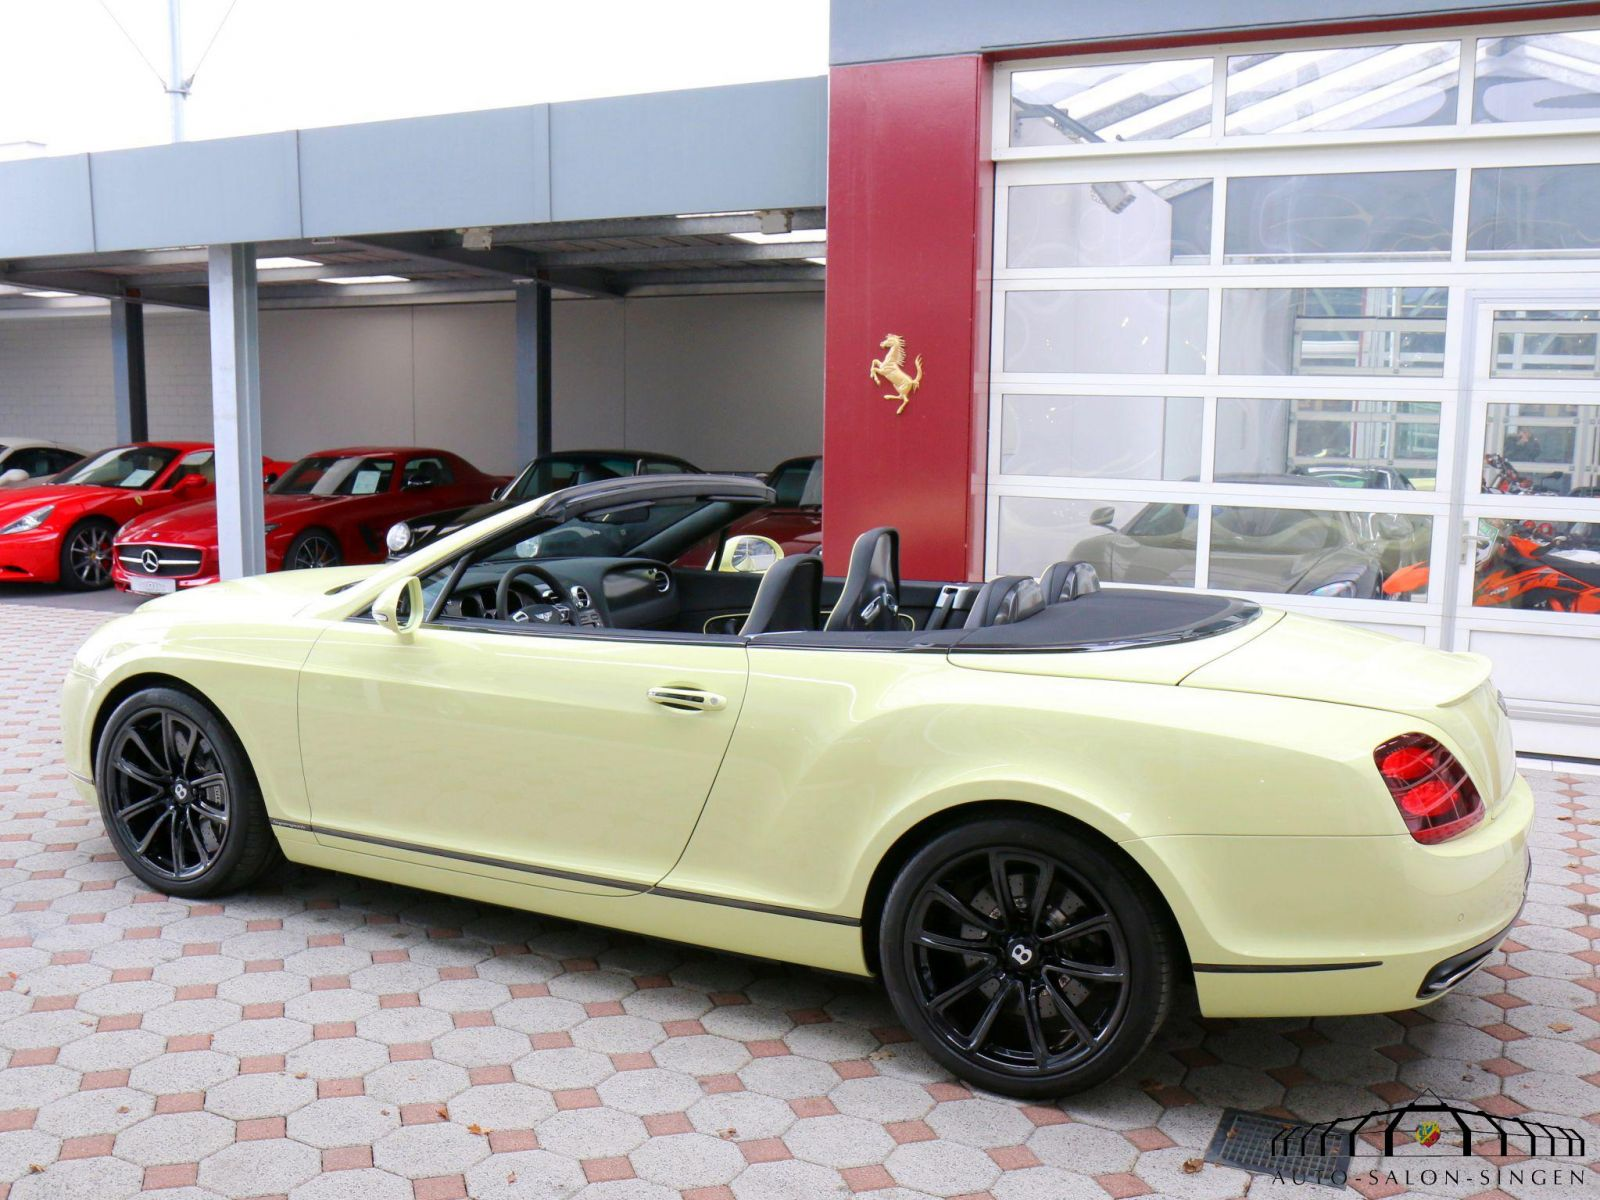 Bentley Auto Salon Singen